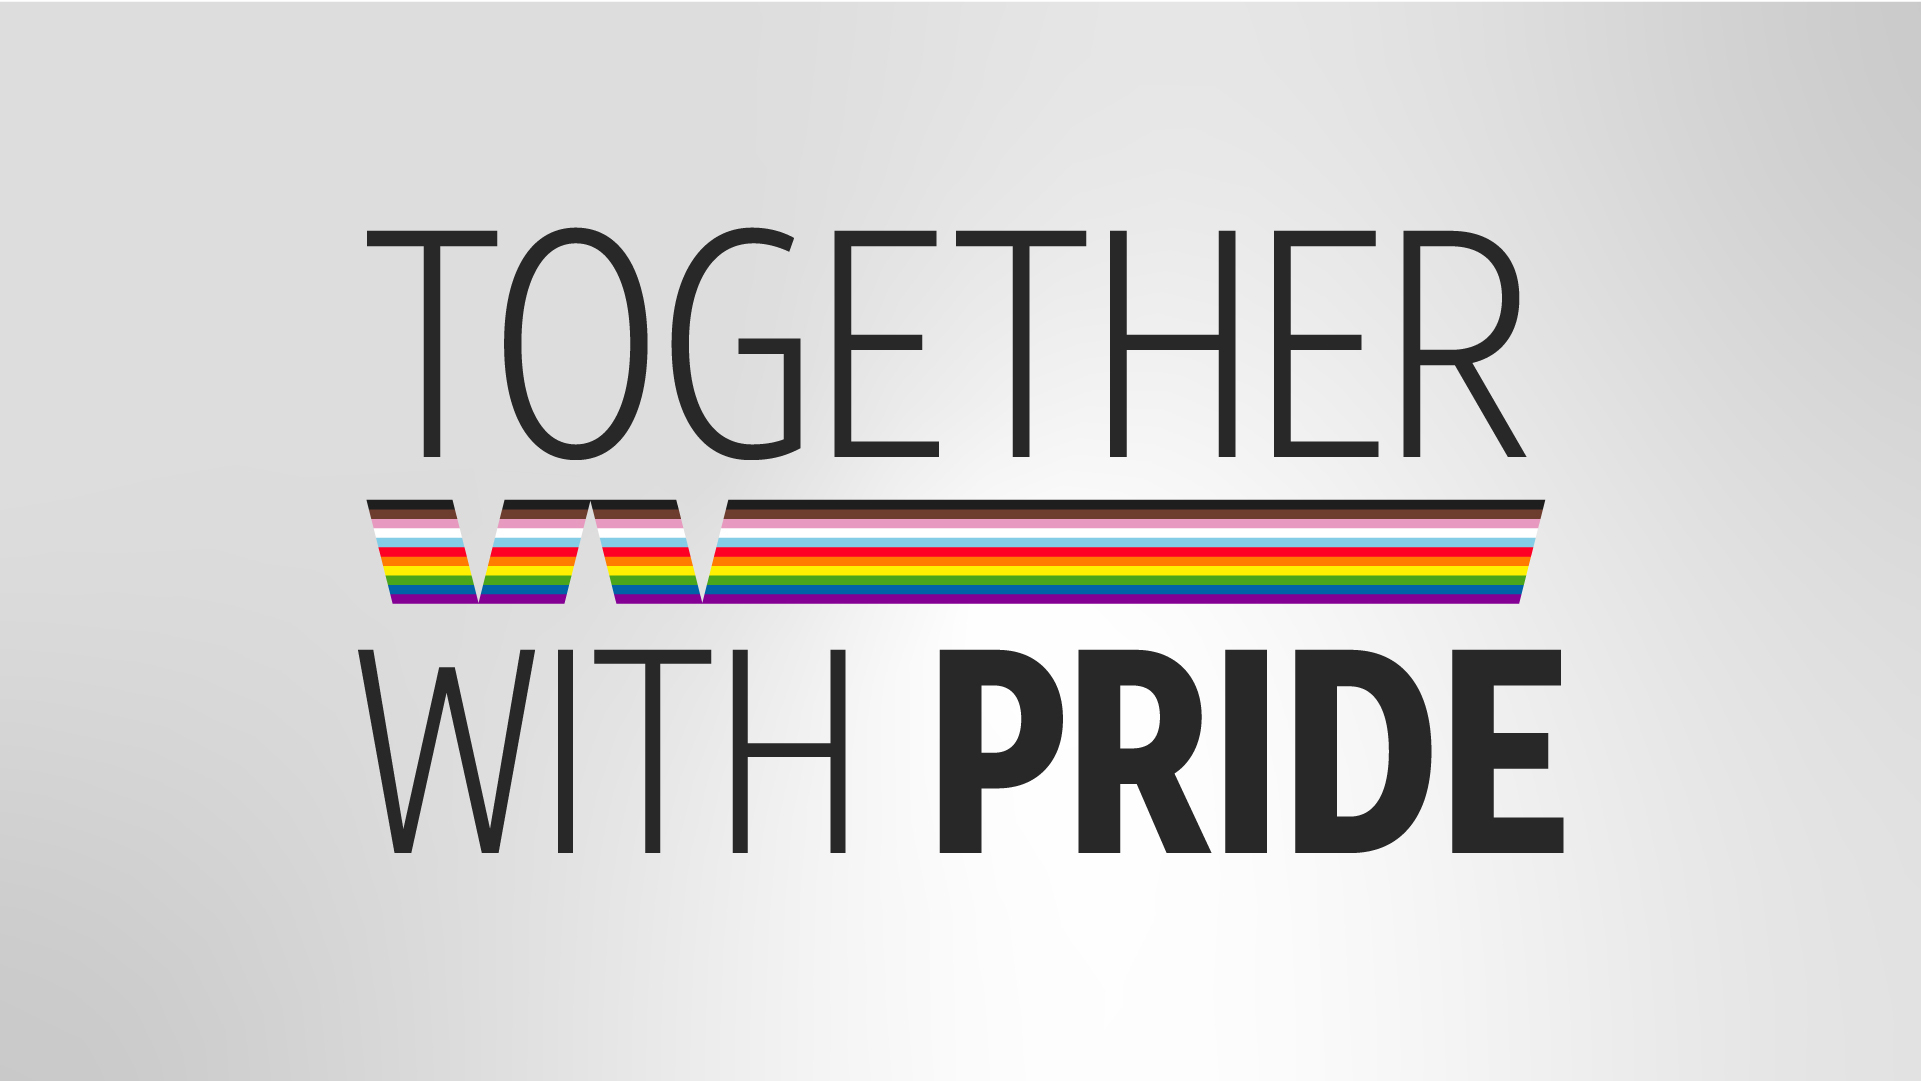 Together with pride